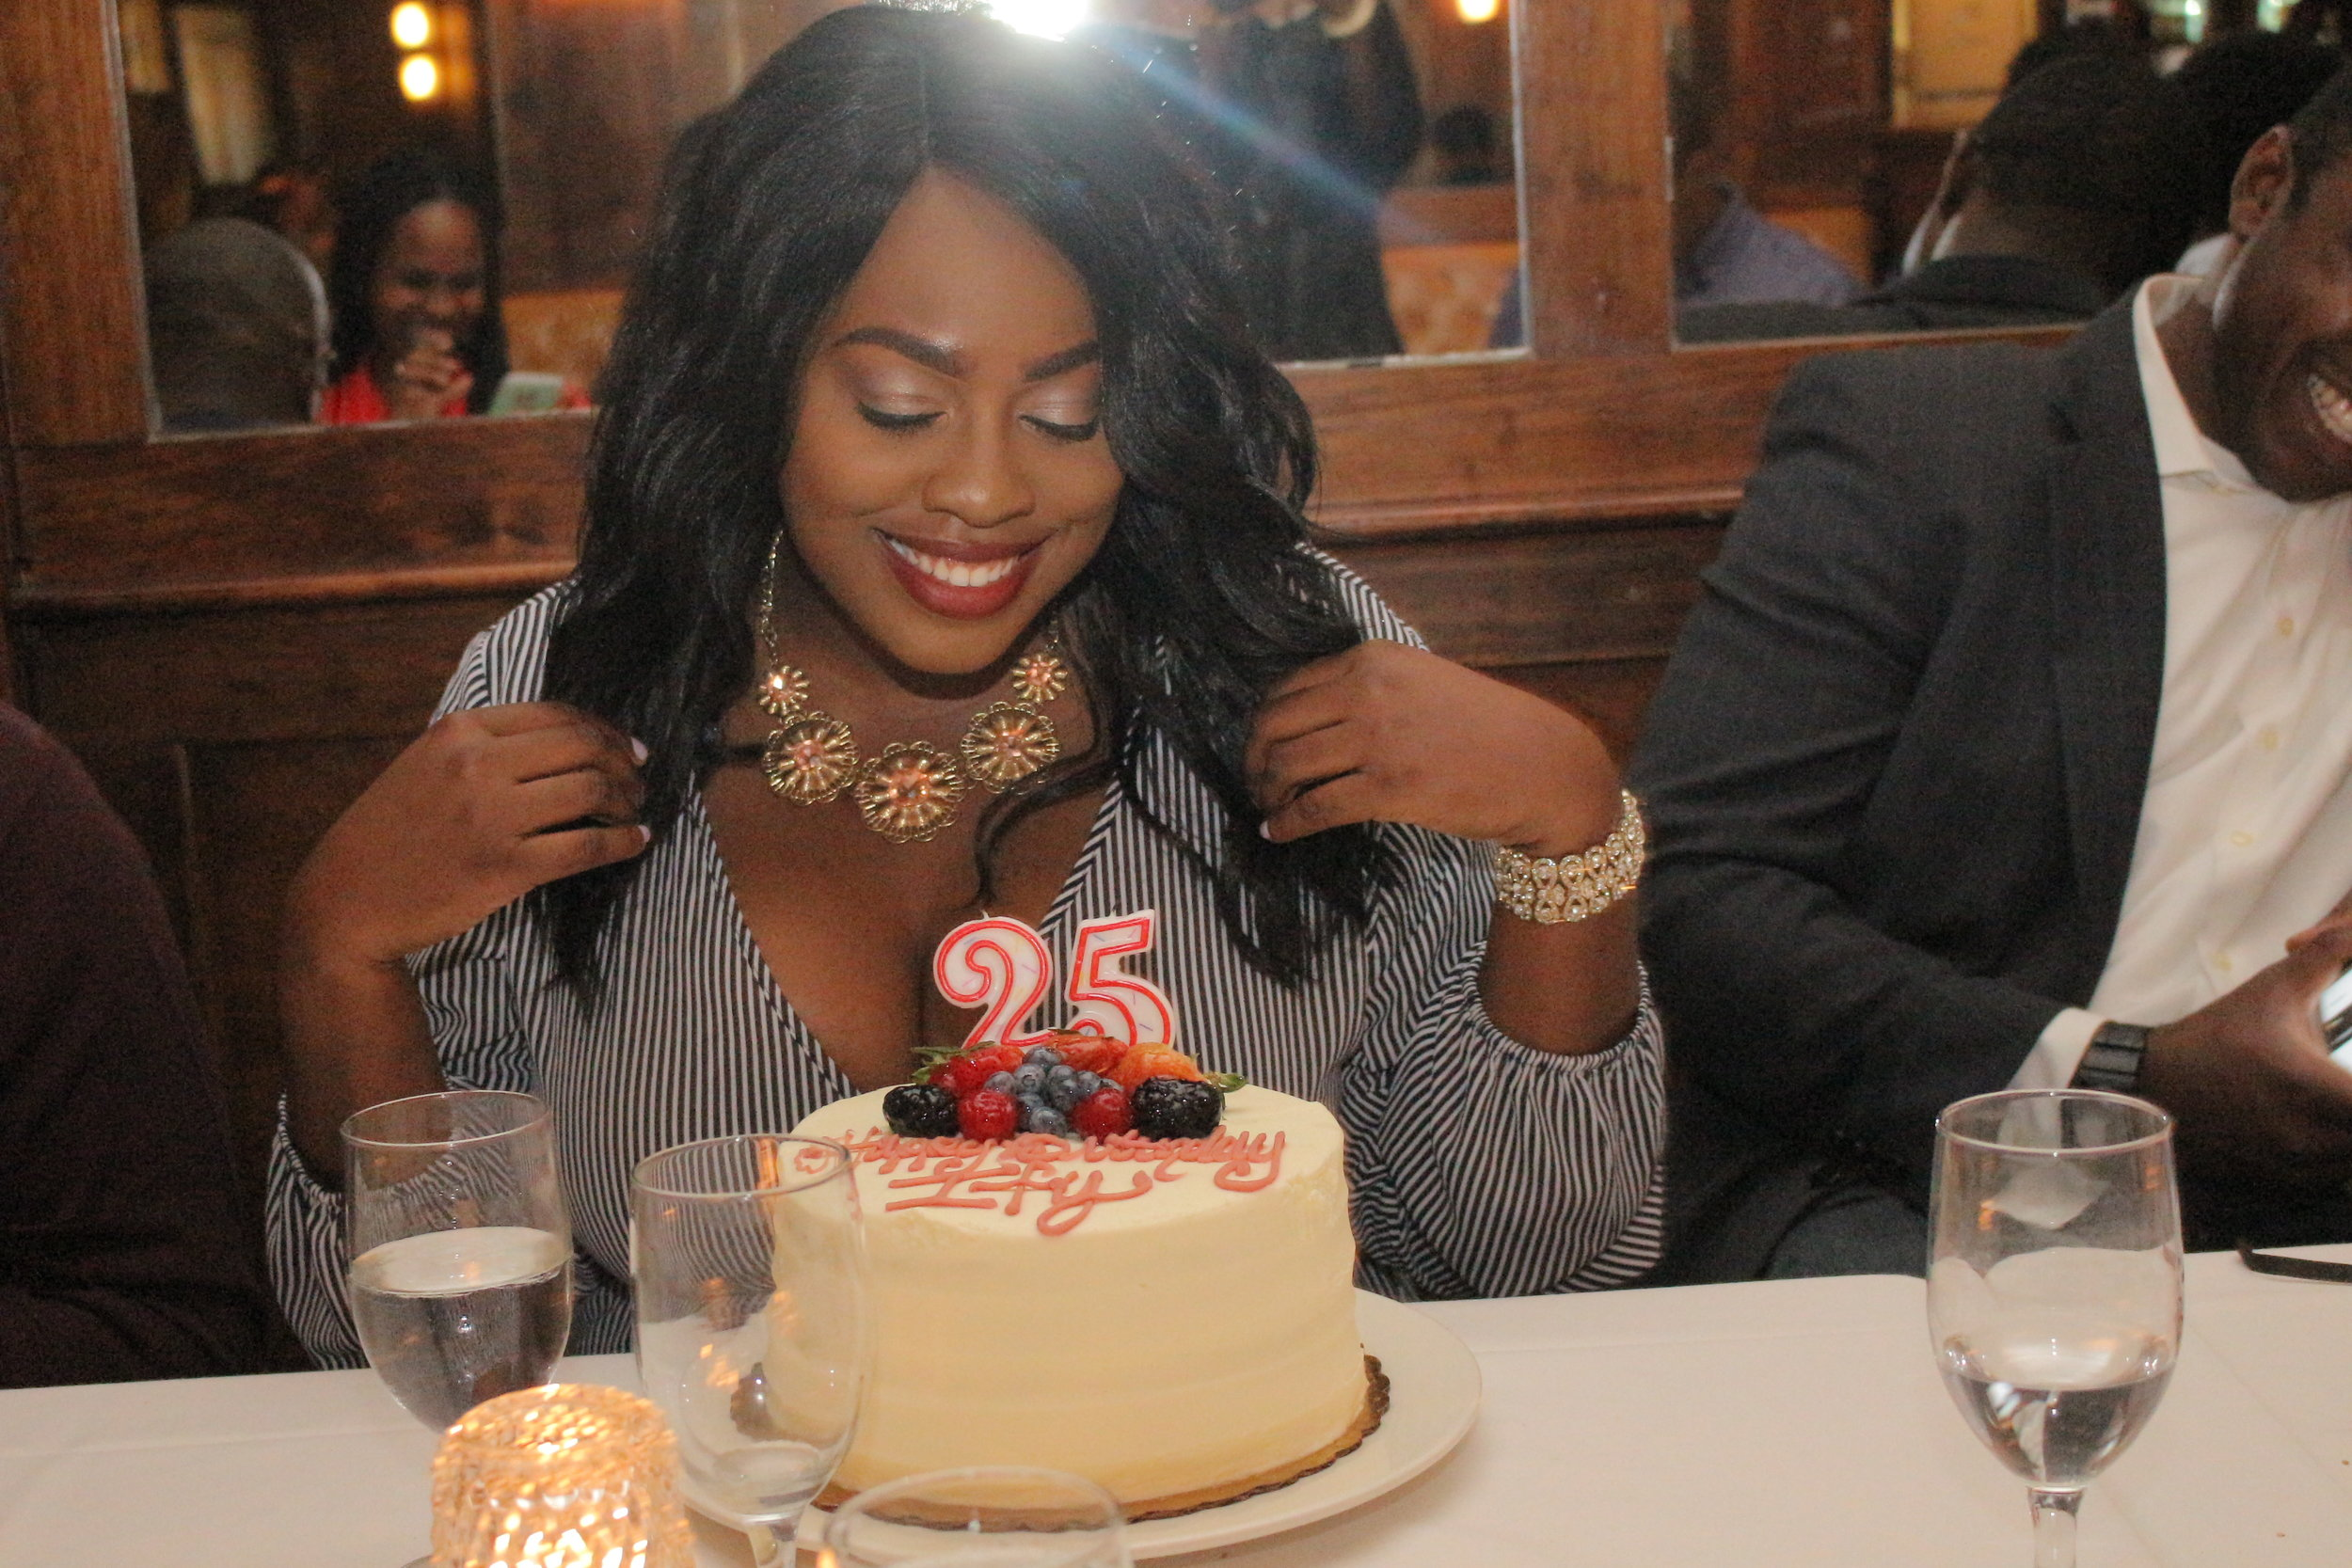 Ify's Birthday Soiree - Tommys Cuisine, New Orleans